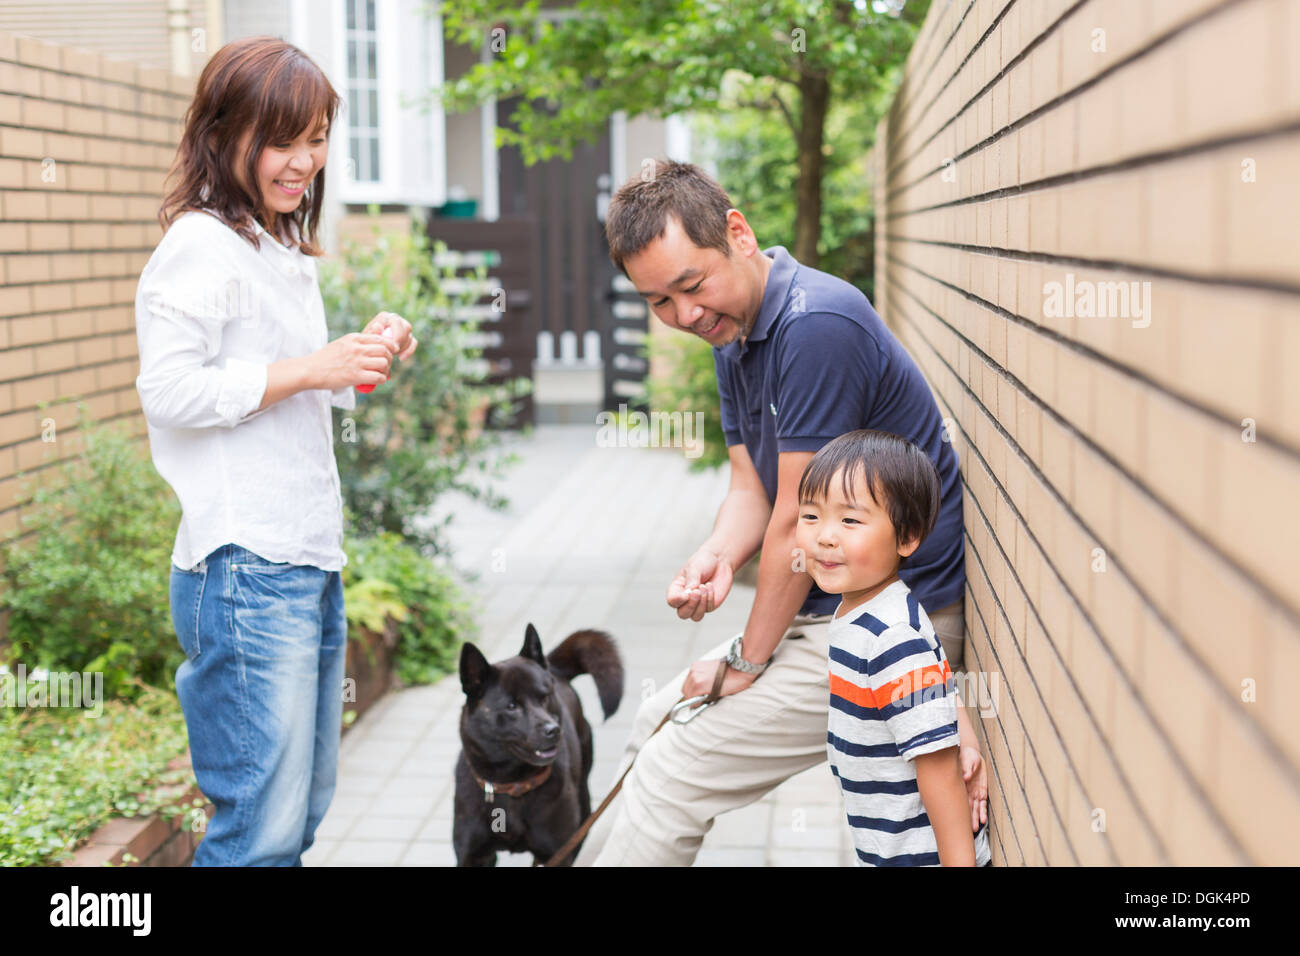 Parents with son and pet dog - Stock Image